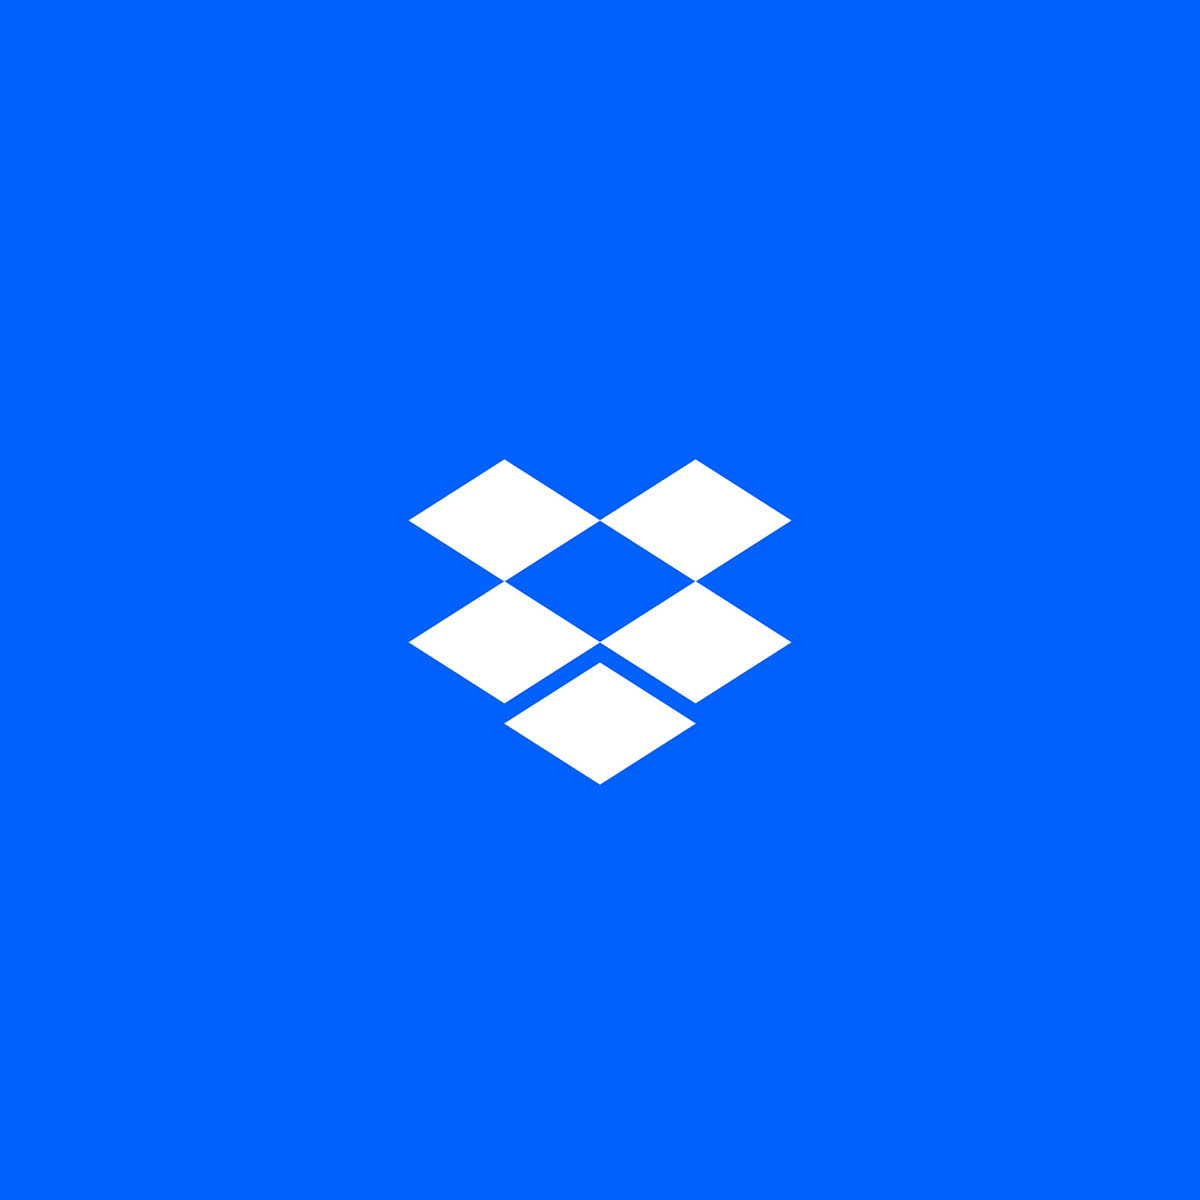 COLLINS Designs Monumental Rebrand for Dropbox